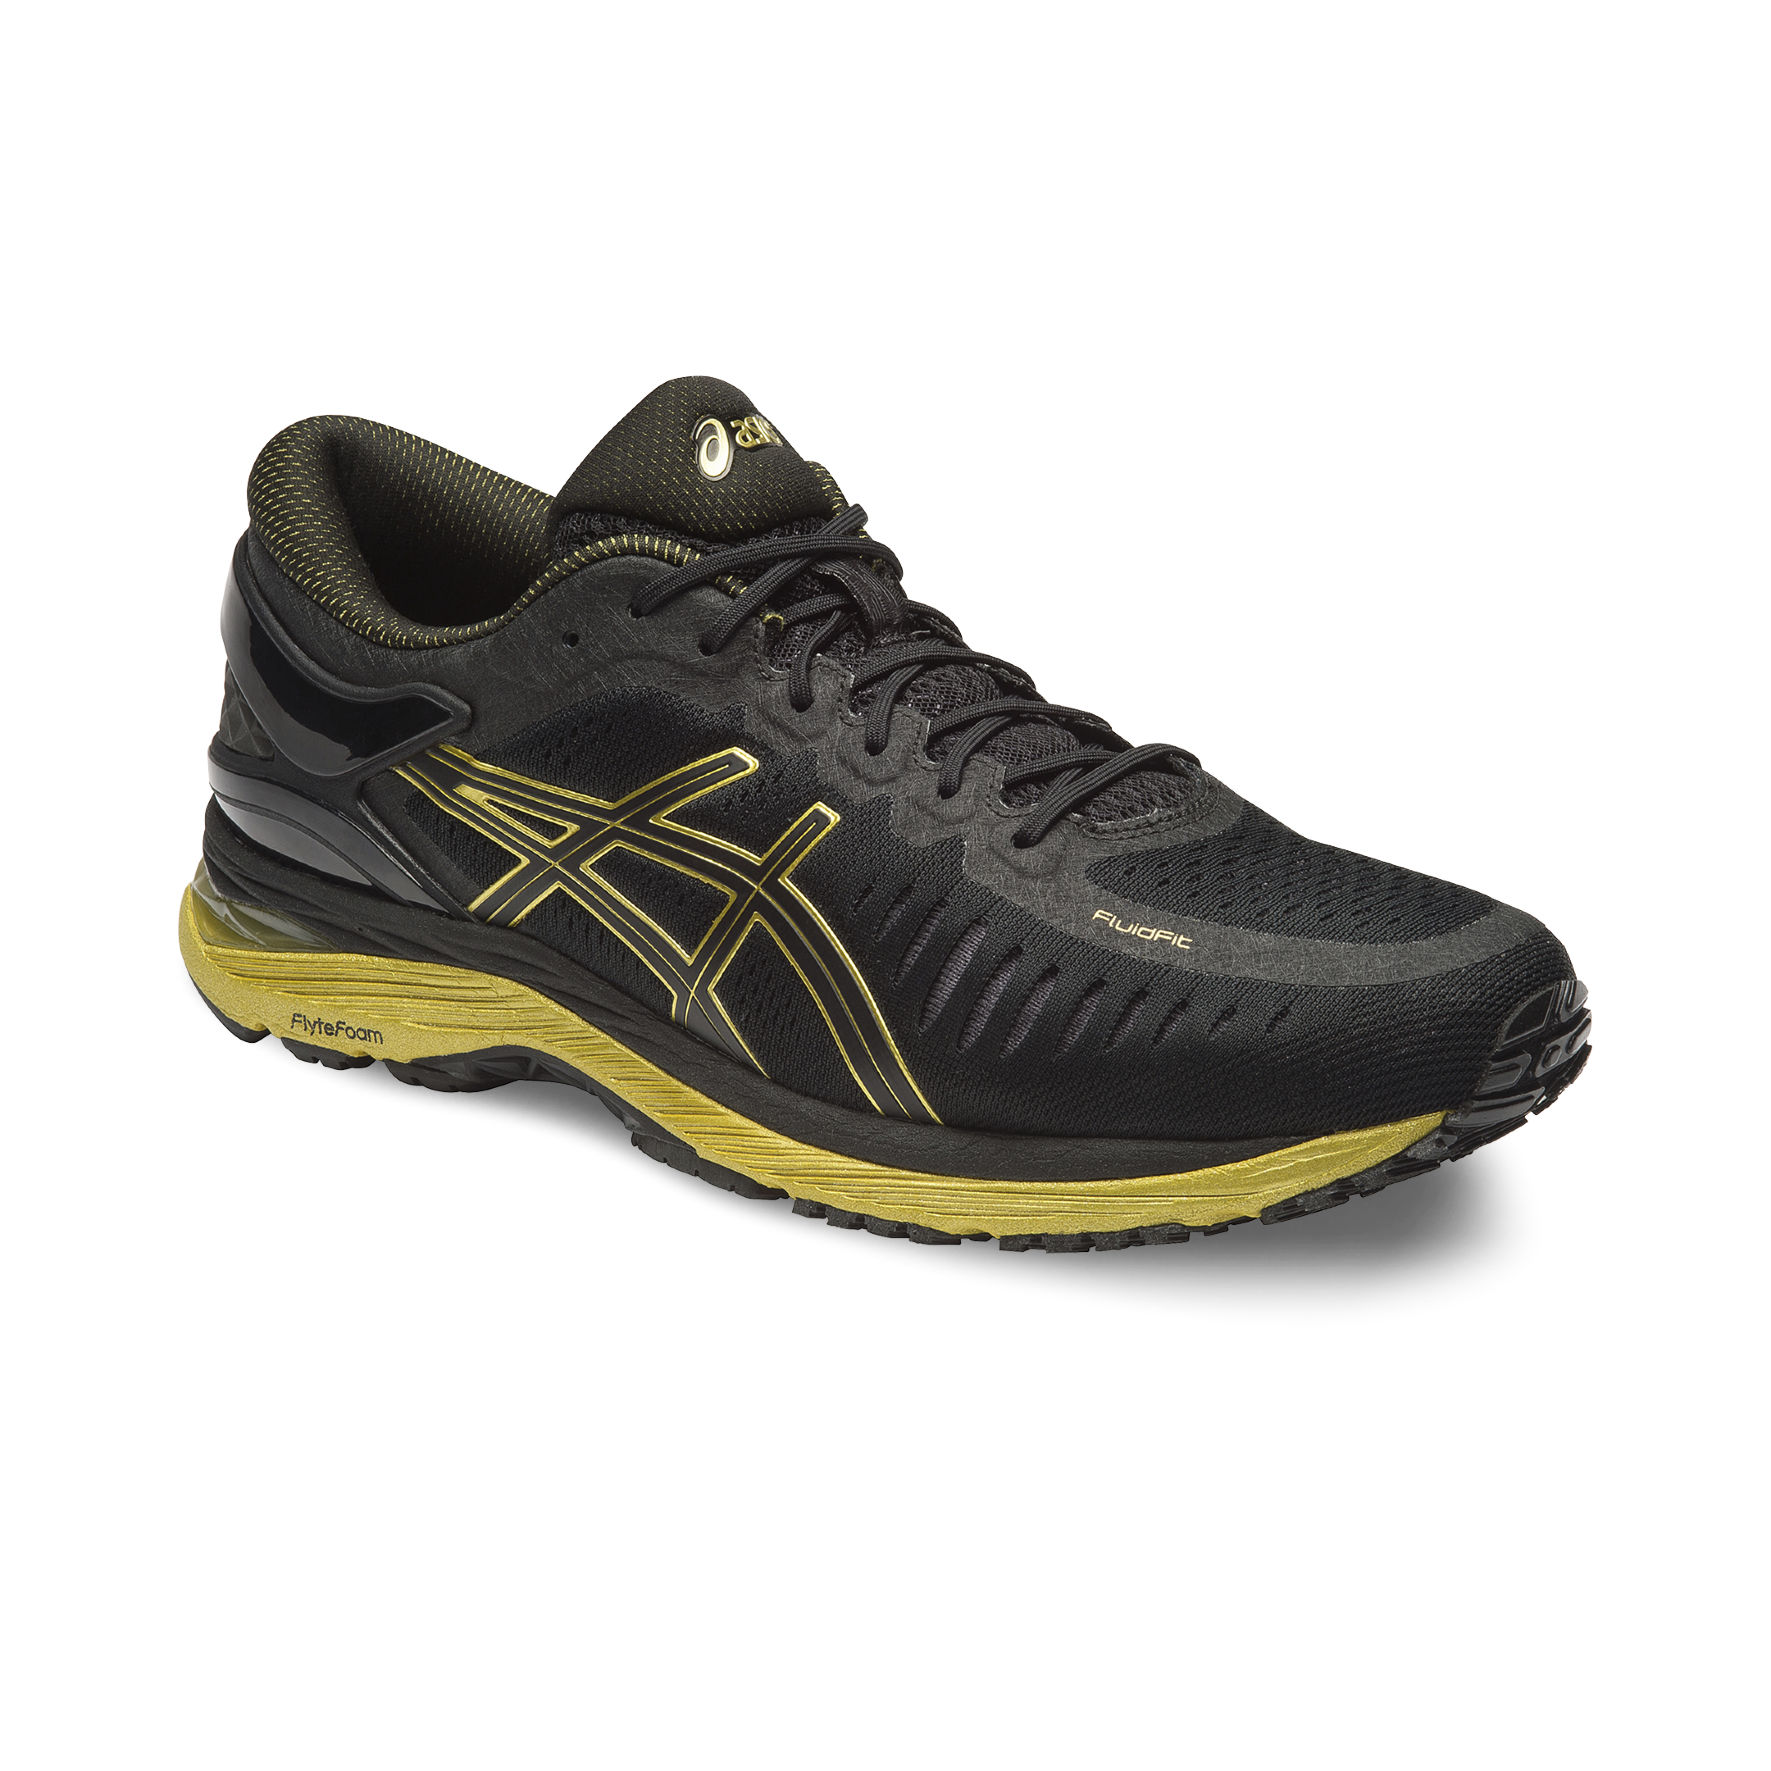 Asics Metarun in Schwarz/Gold